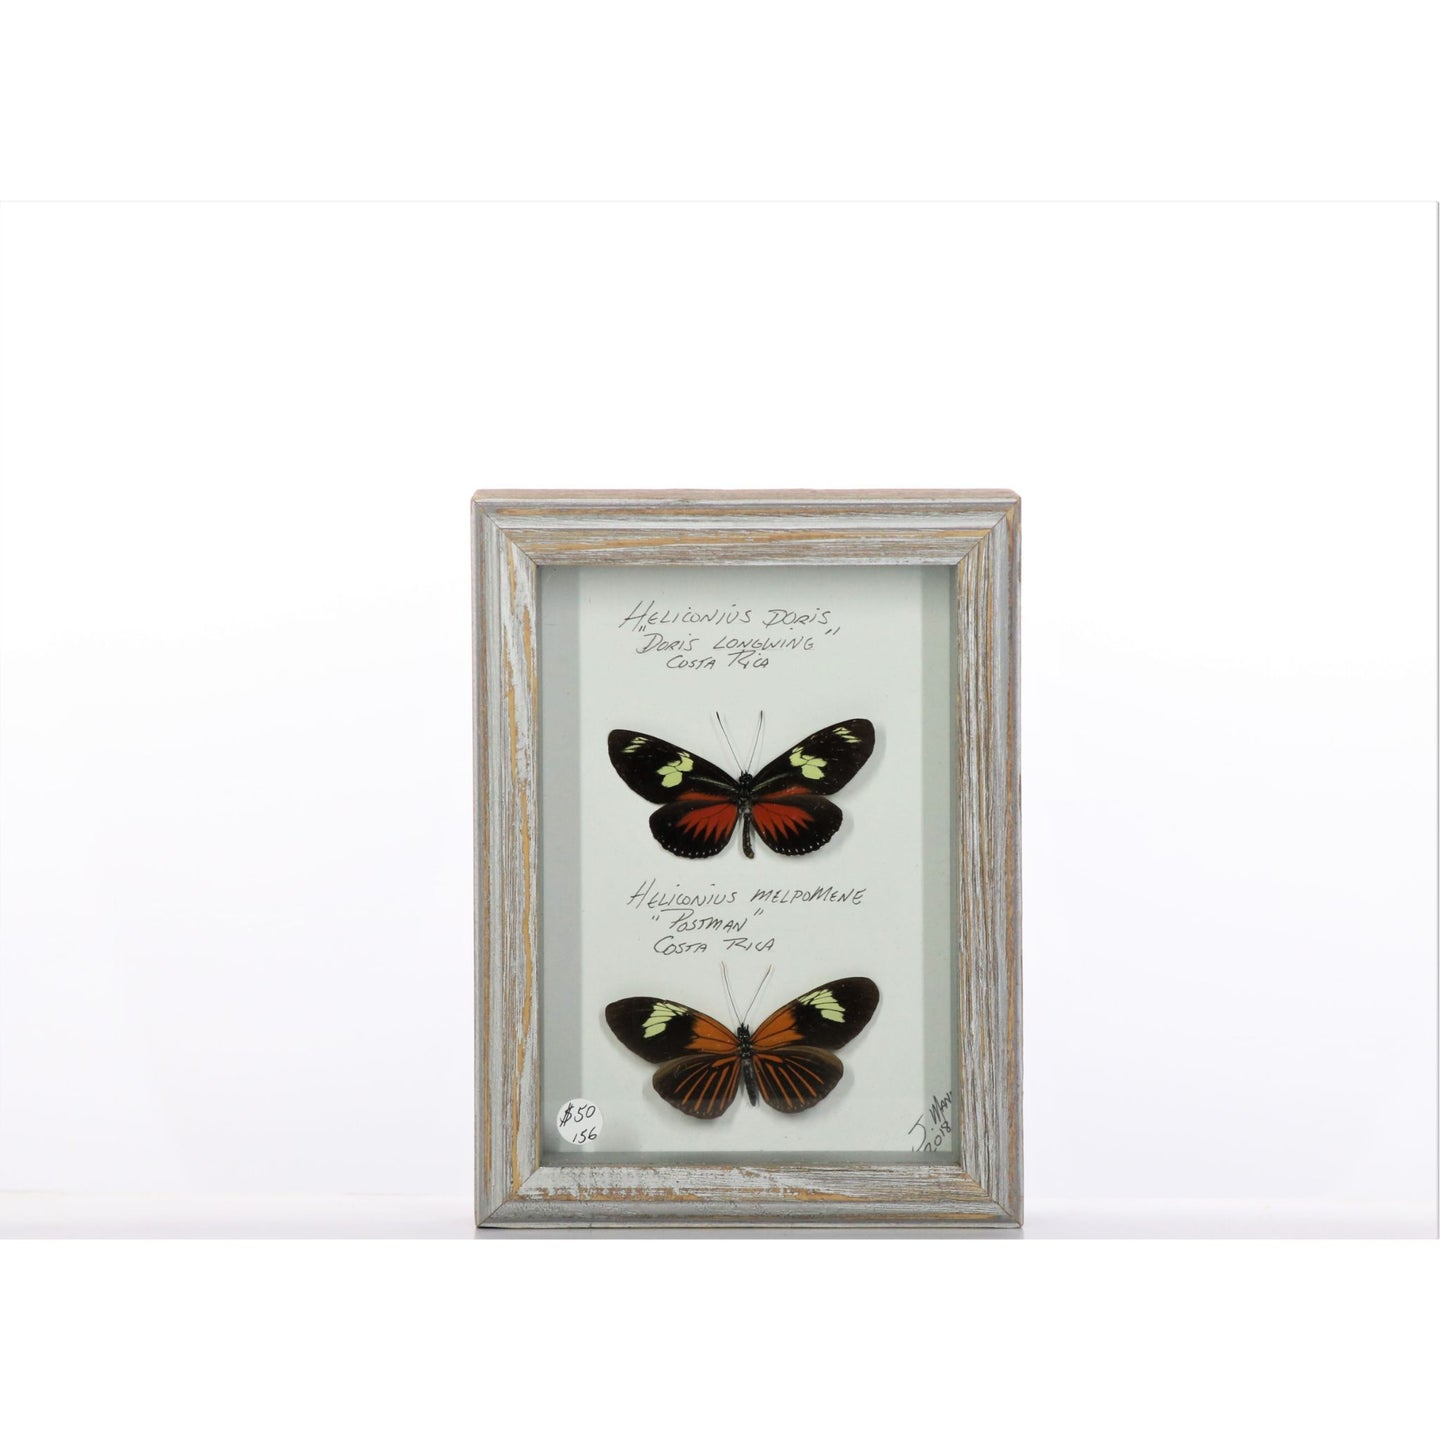 Two Helicon Butterflies 5x7 Gray #156 Framed Art - Insecta Etcetera